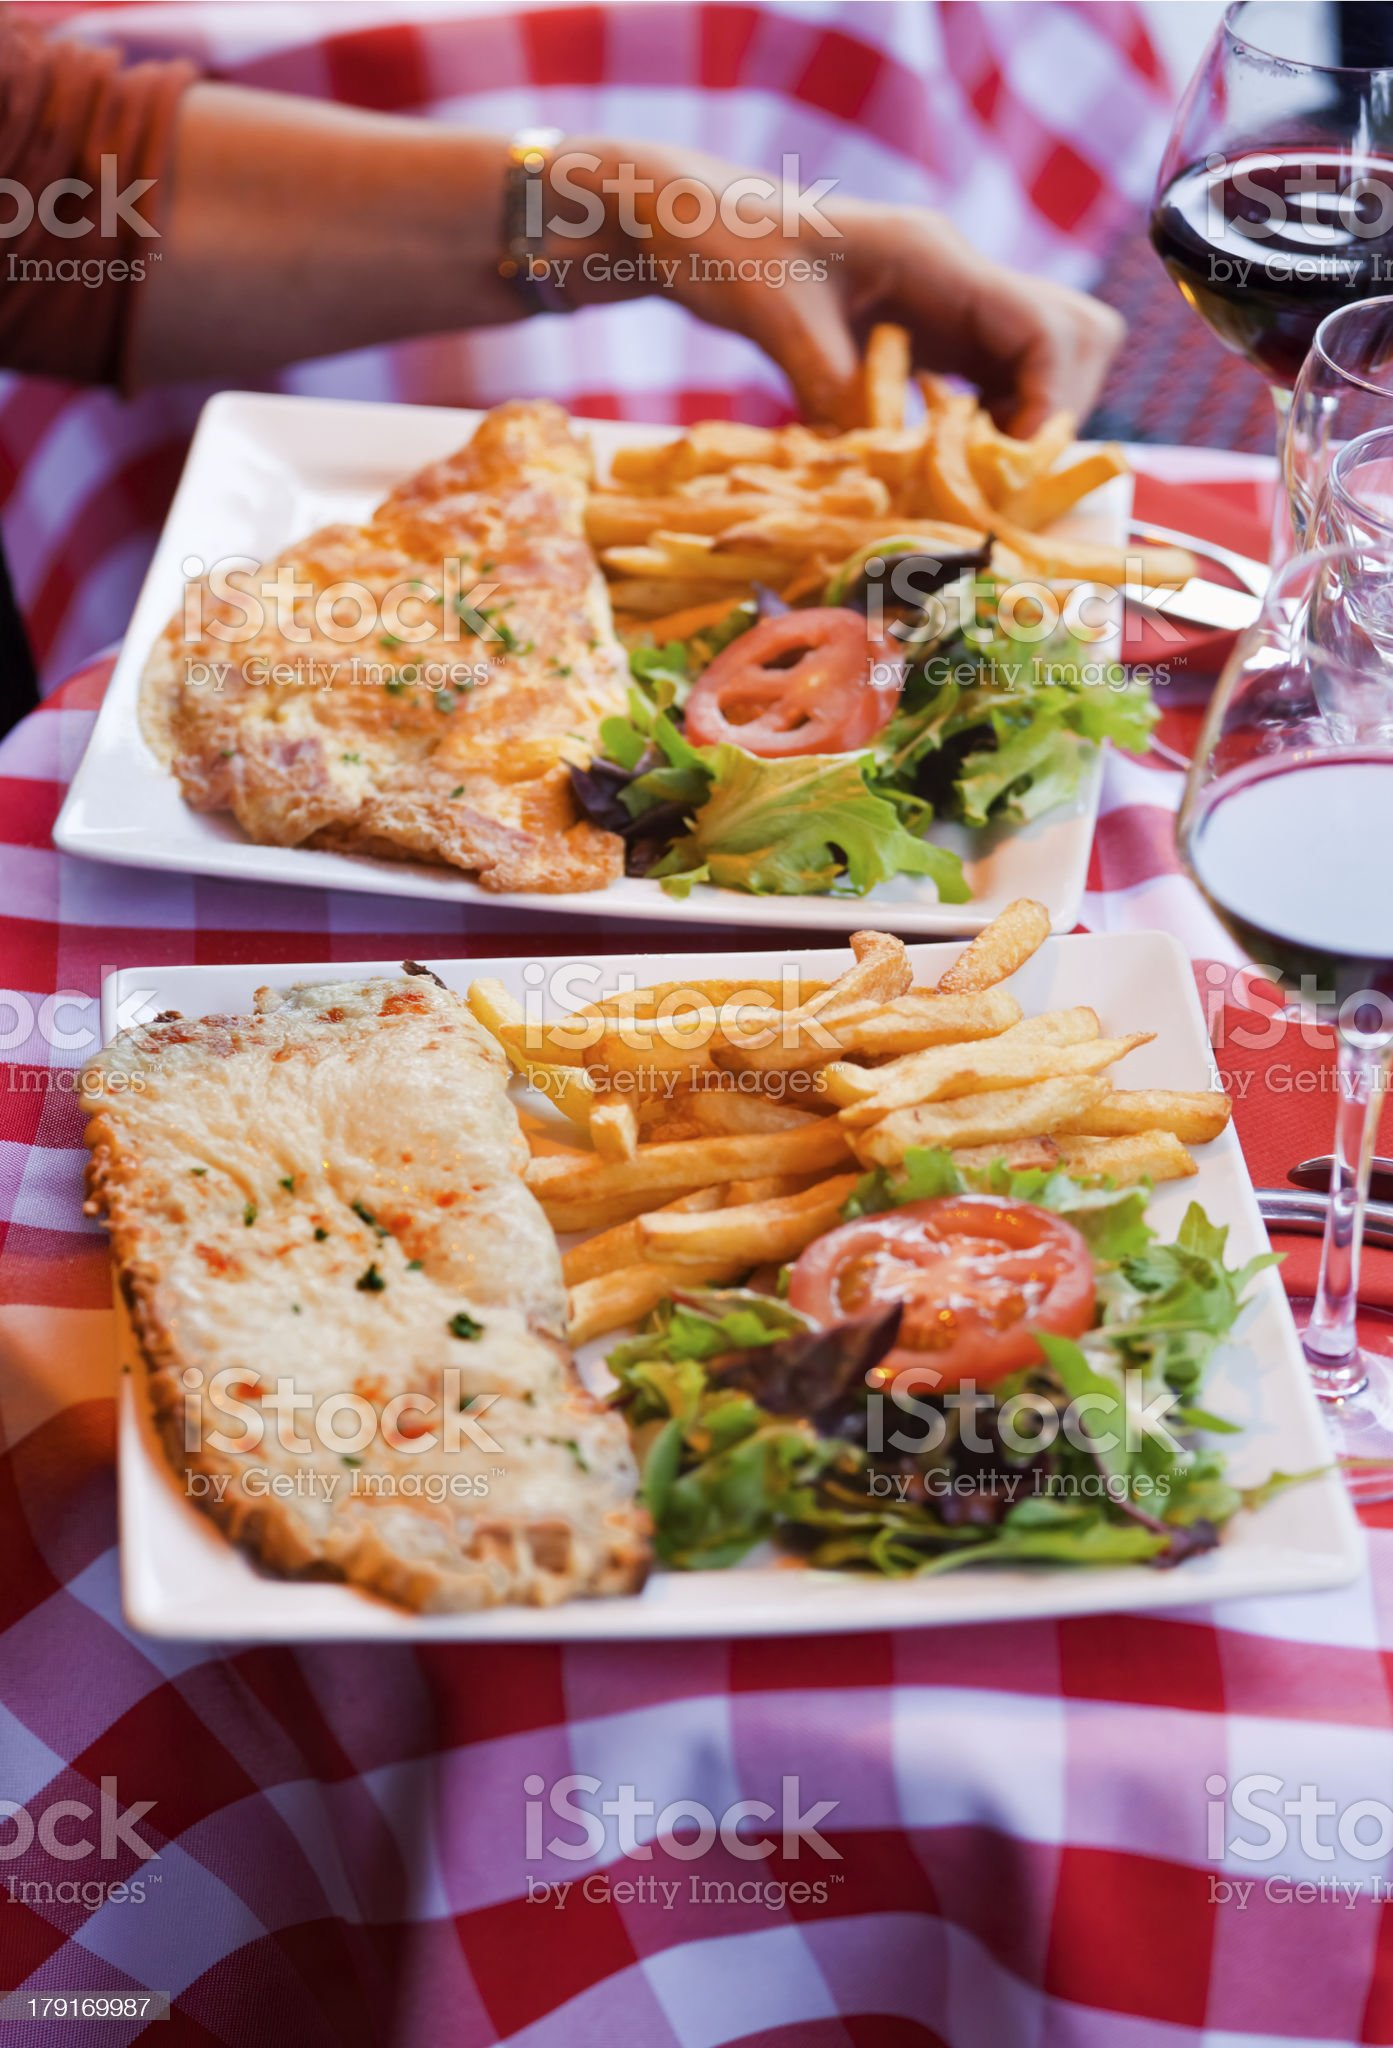 Brasserie Lunch in Paris royalty-free stock photo